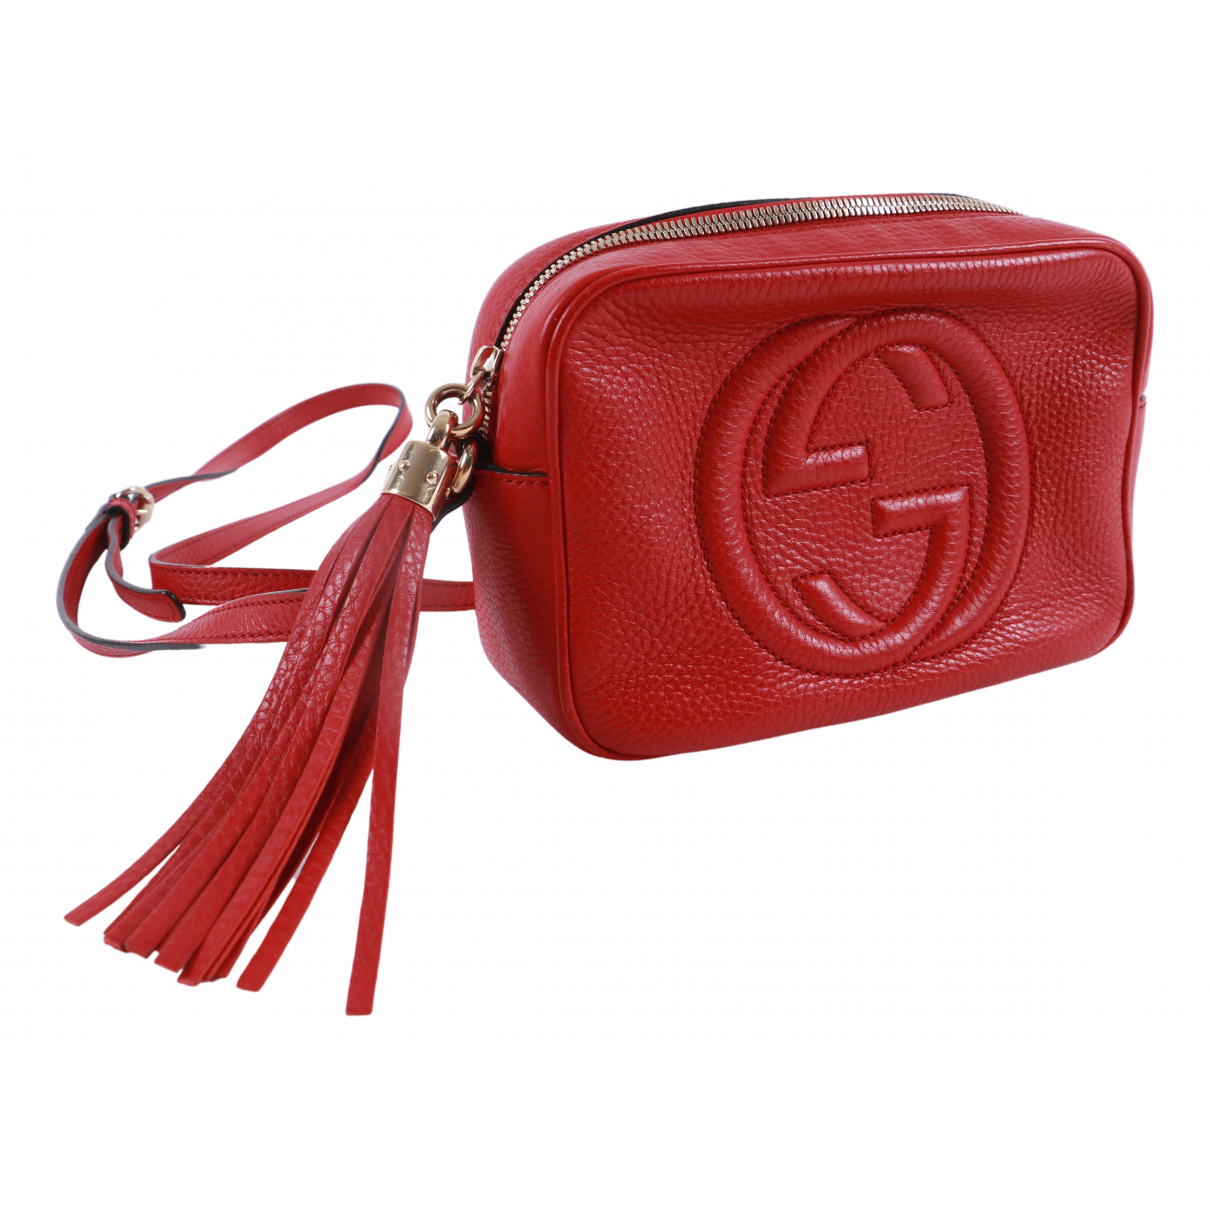 Gucci Soho Red Leather handbag for Women \N